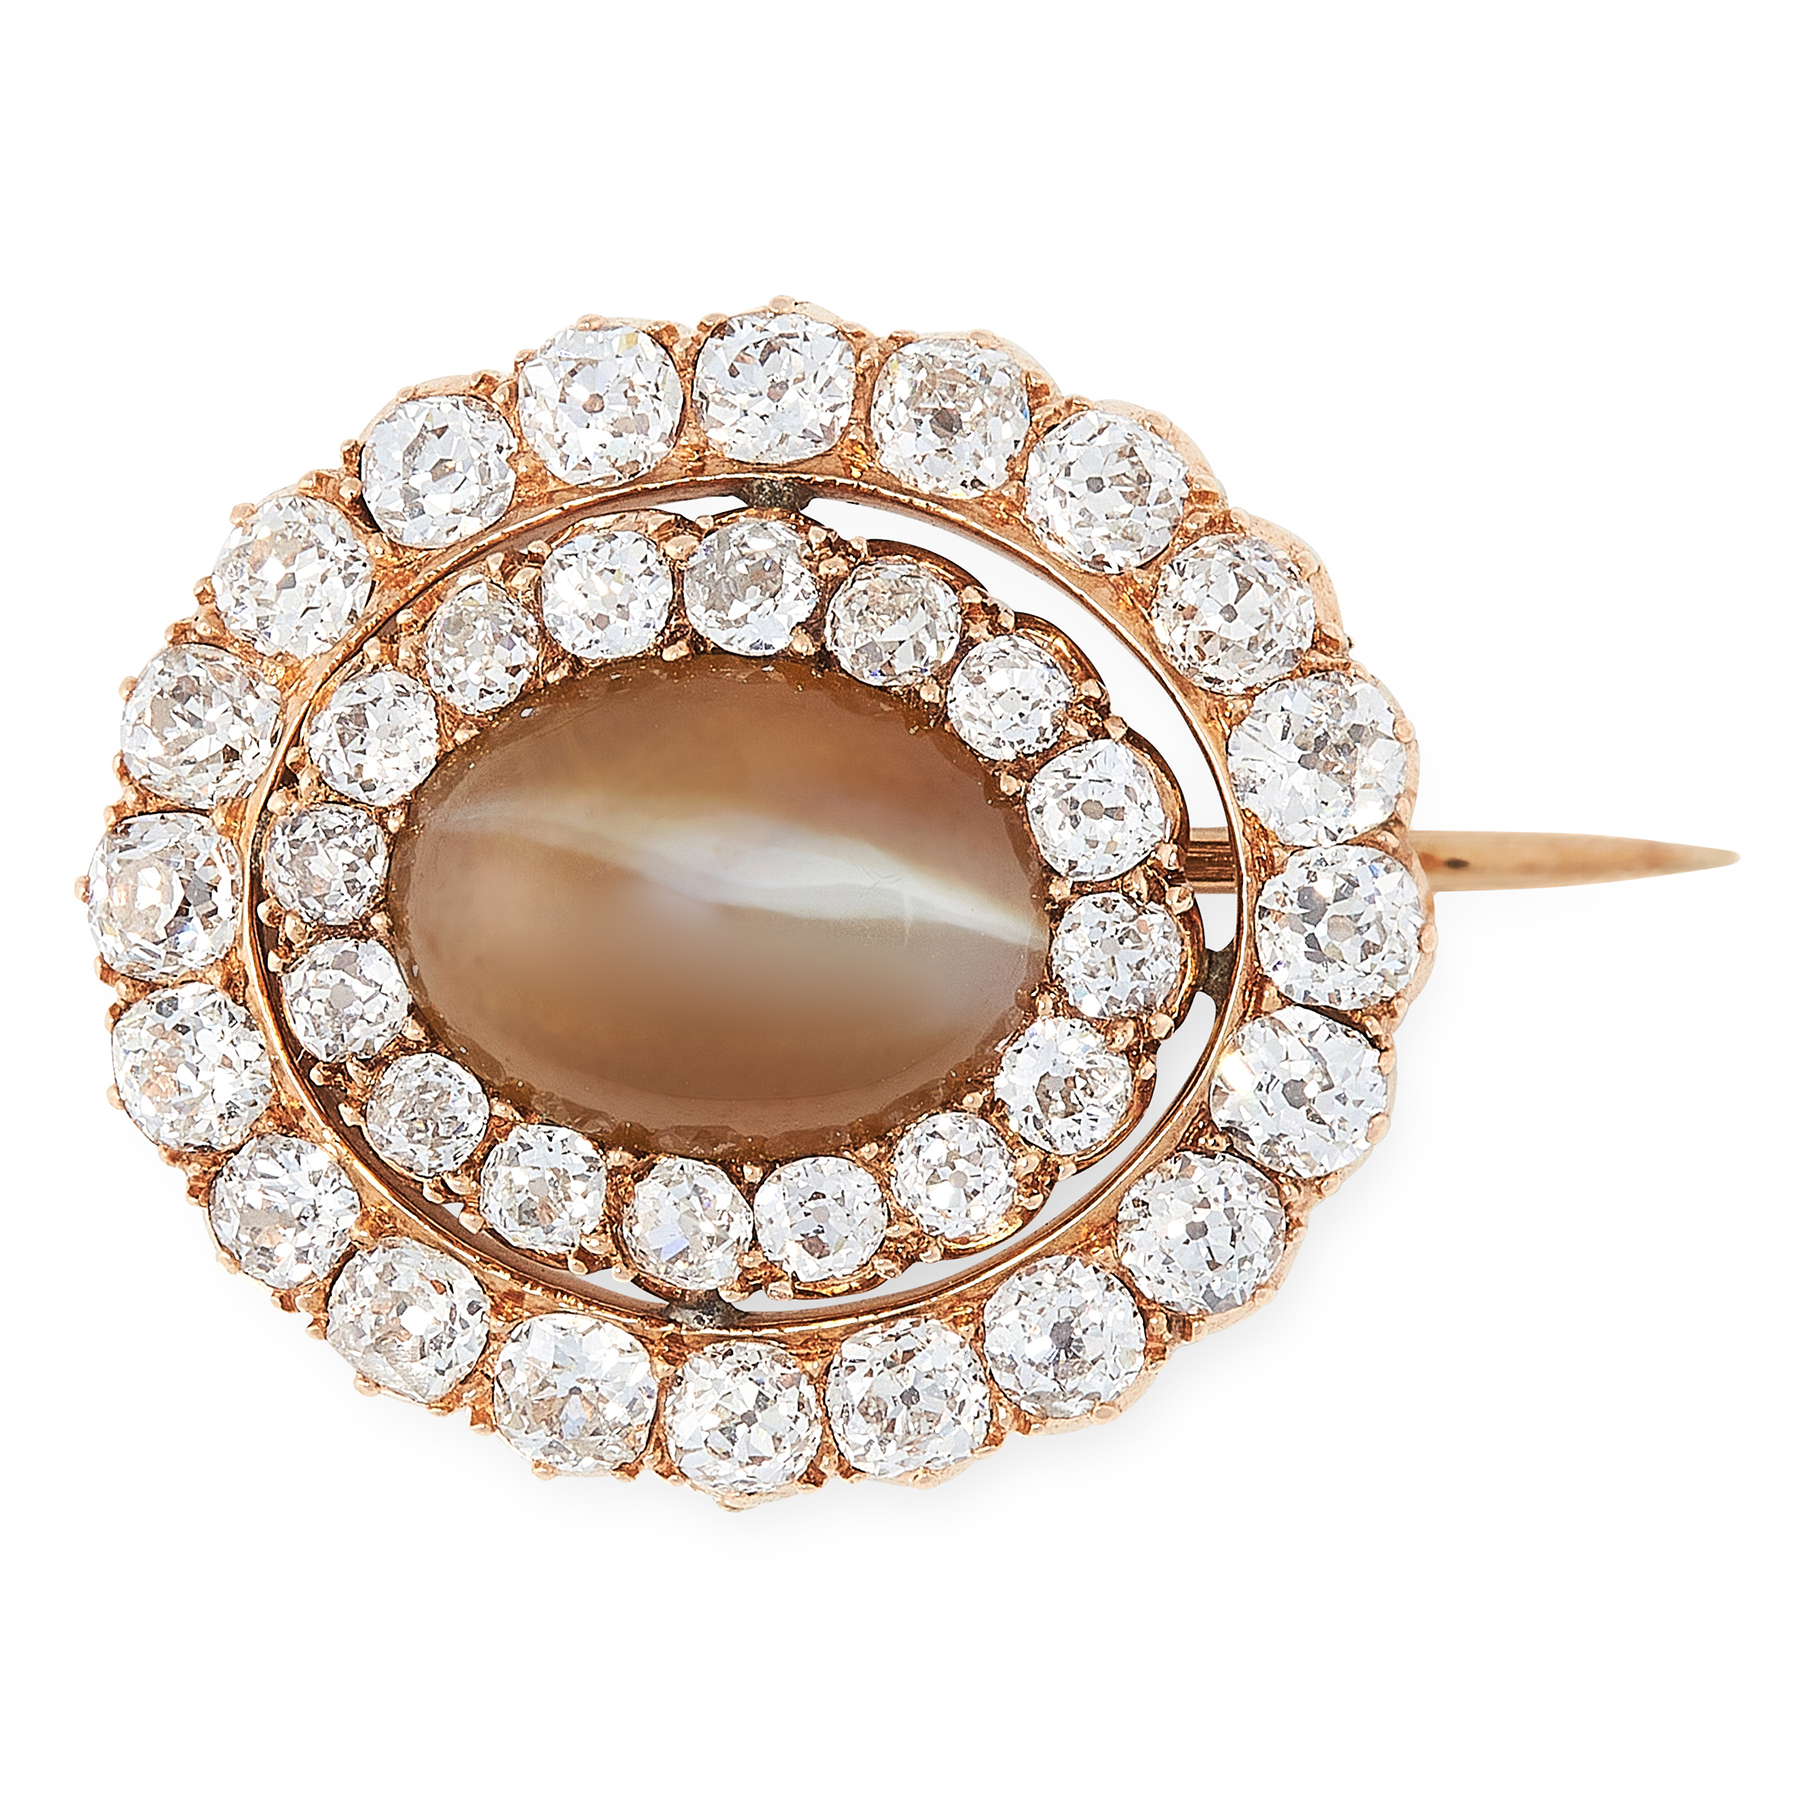 Lot 29 - AN ANTIQUE CATS EYE CHRYSOBERYL AND DIAMOND BROOCH in high carat yellow gold, set with an oval